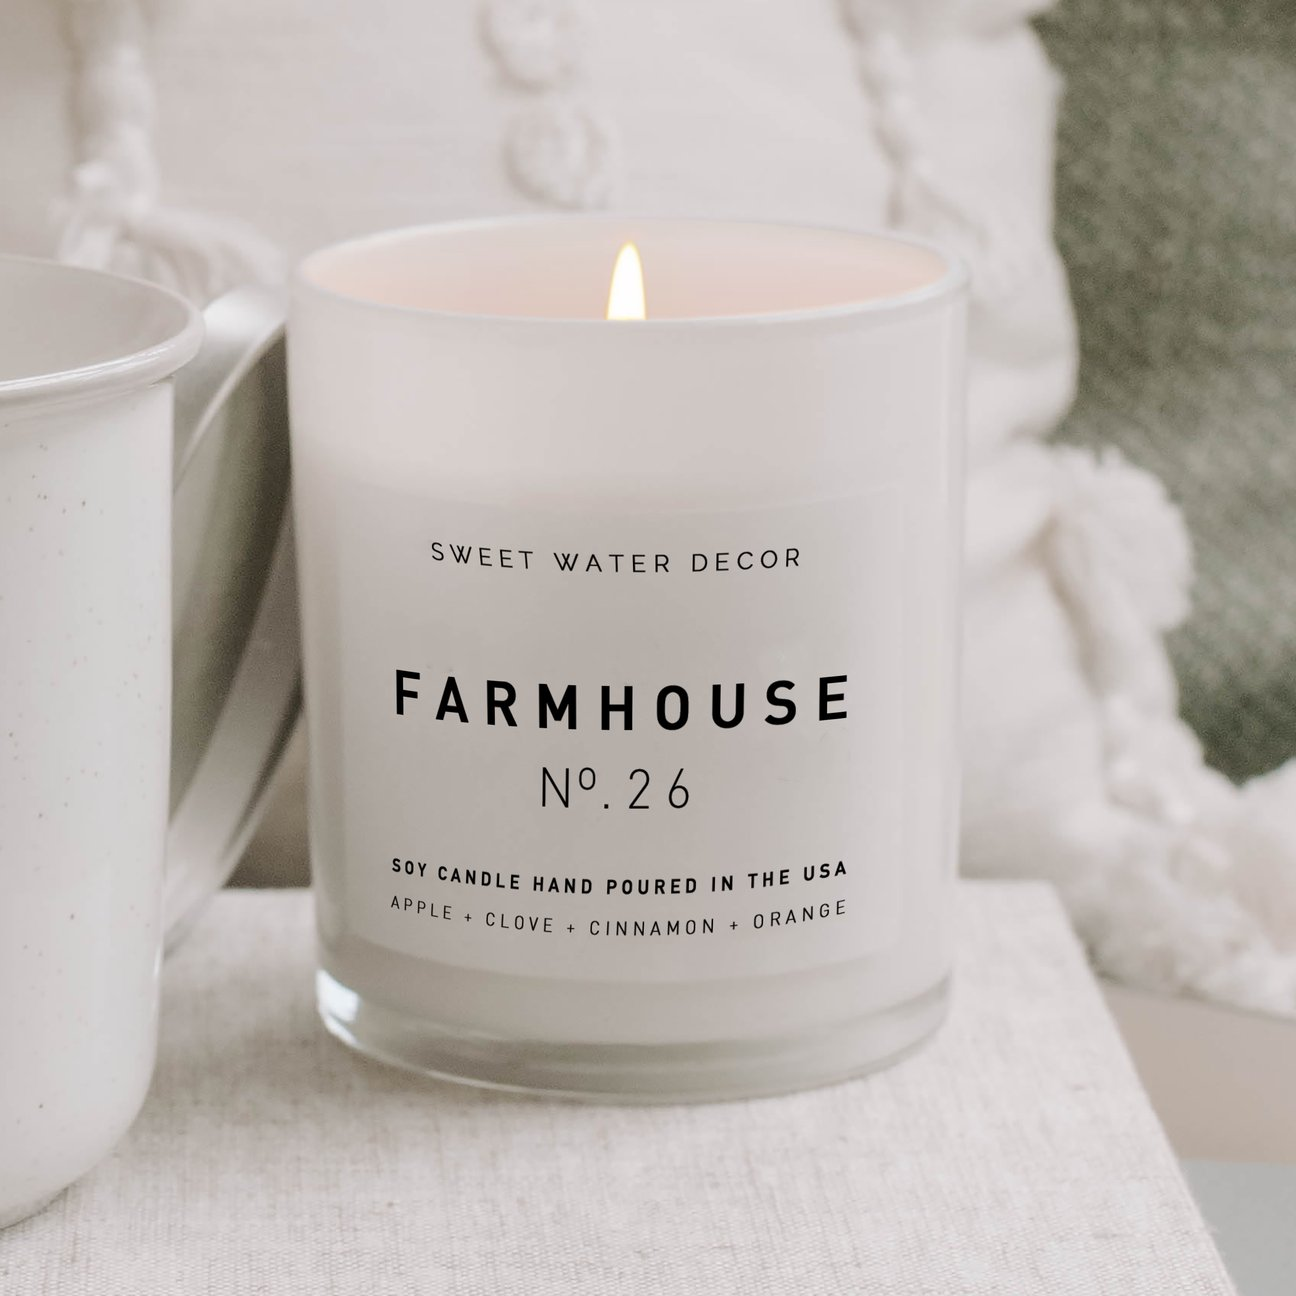 SWD Farmhouse Soy Candle